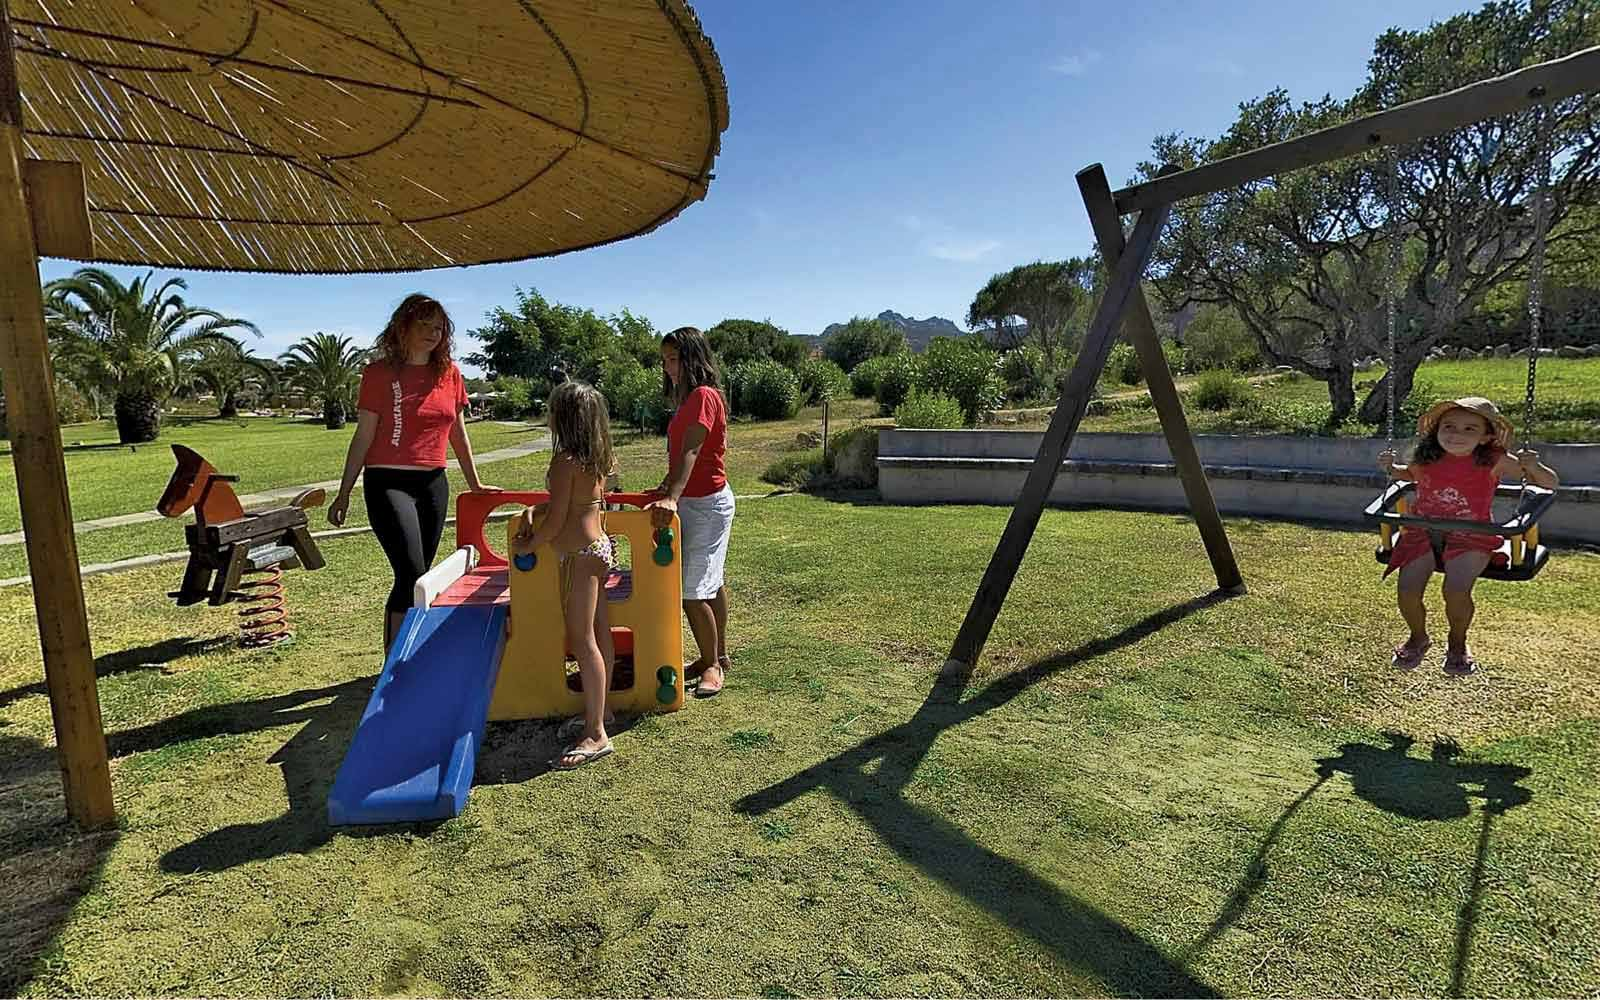 Children playground at Resort Cala Di Falco La Rotonda Residence